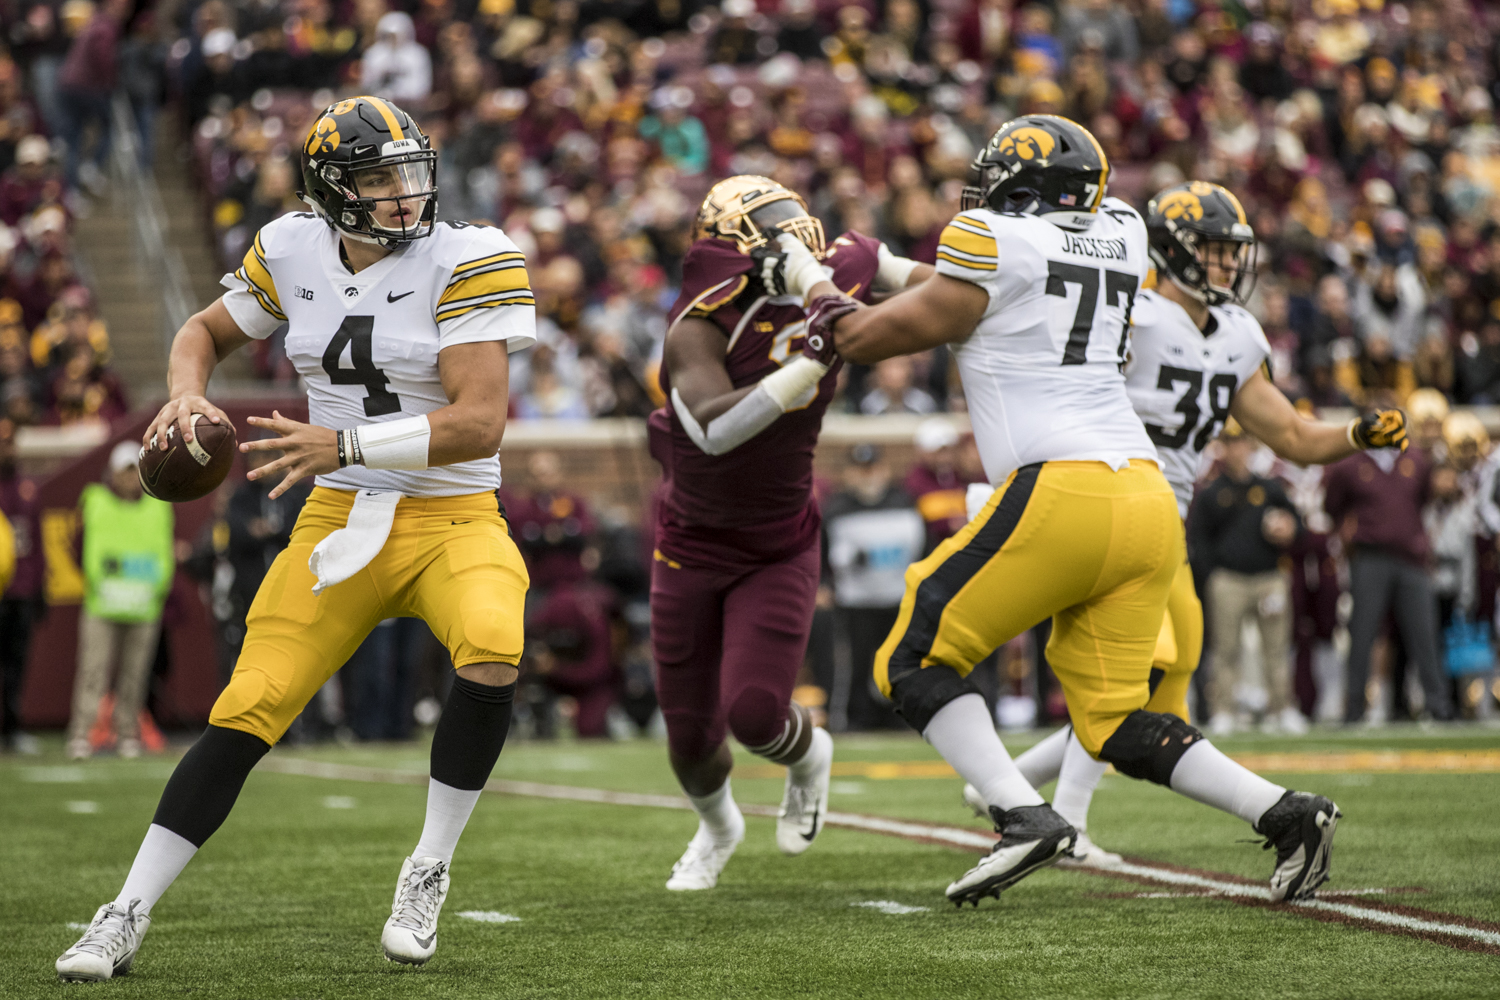 Iowa quarterback Nate Stanley steps into a throw during Iowa's game against Minnesota at TCF Bank Stadium on Saturday, October 6, 2018.